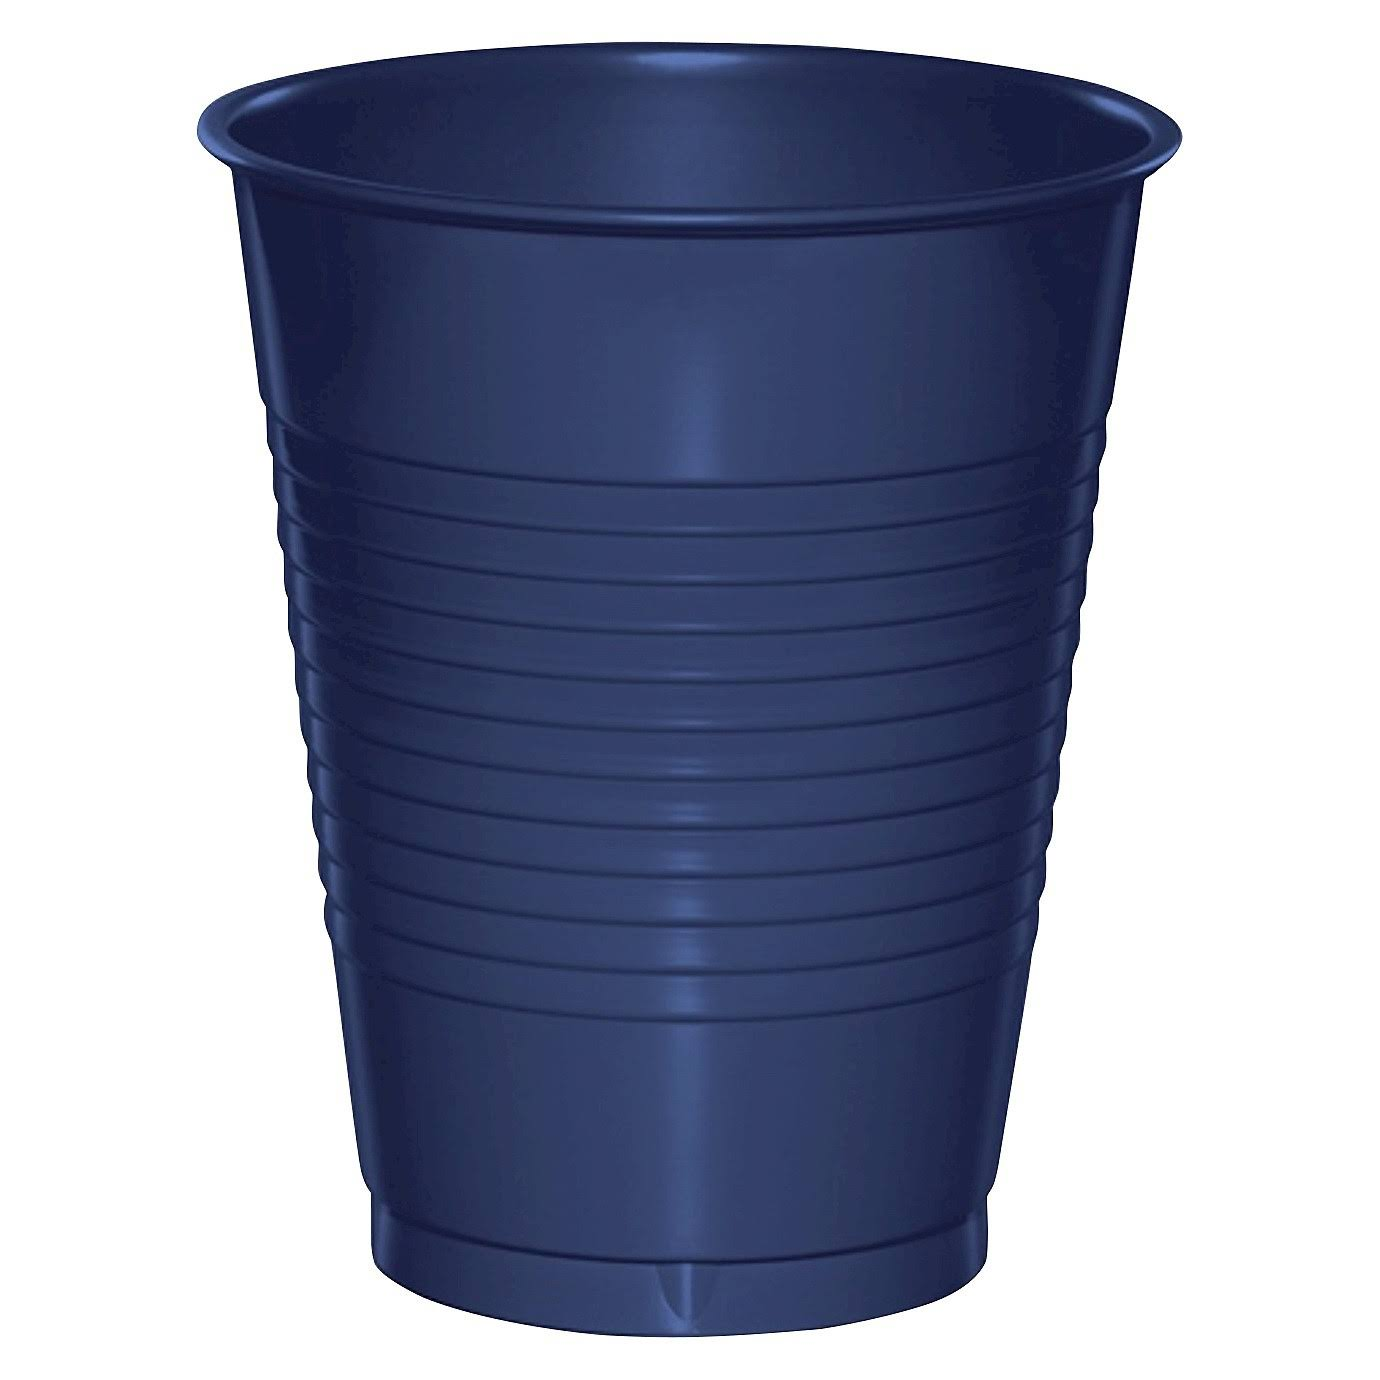 Creative Converting Touch of Color Plastic Cups - 16 oz, Navy, 20ct